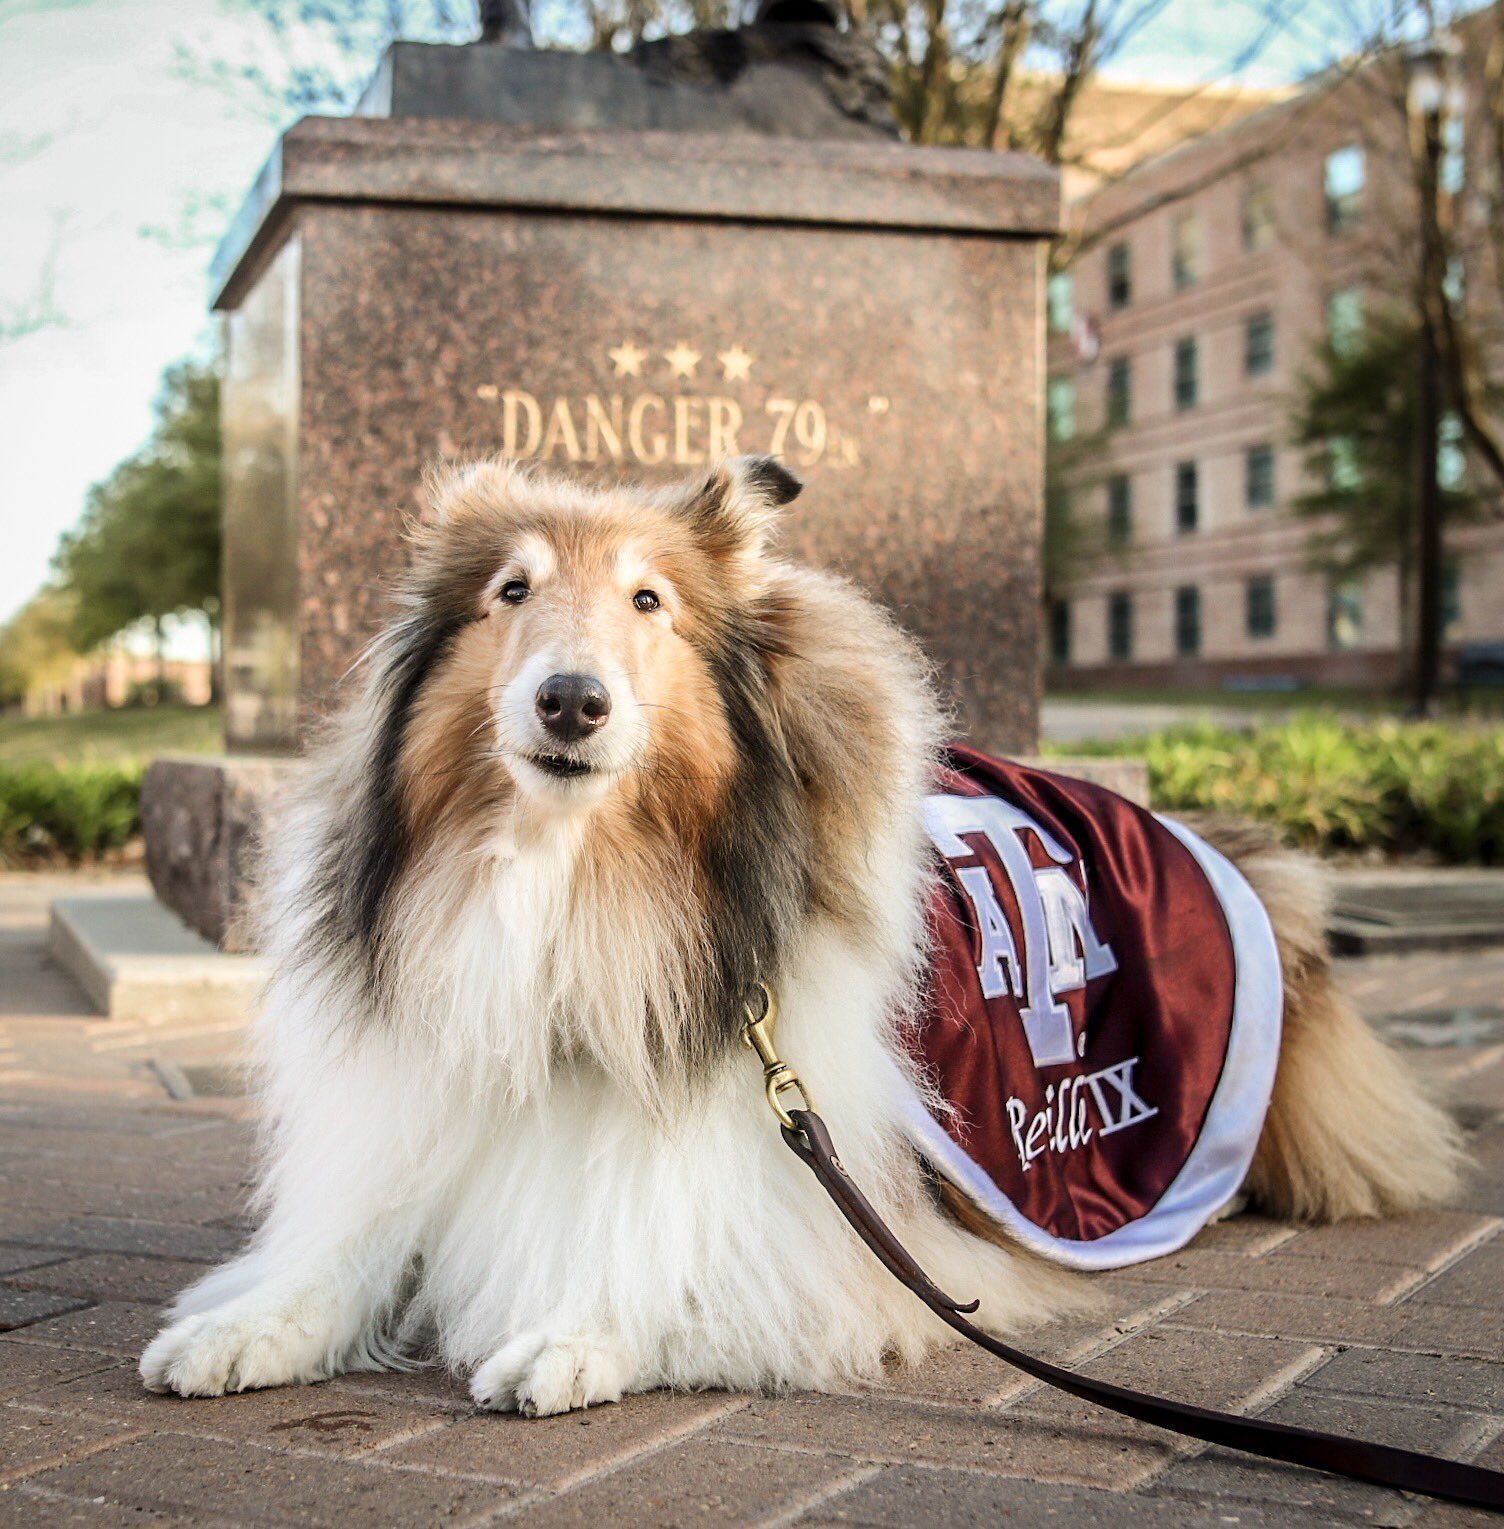 This Is A Beautiful Pic Of Reveille Ix At C Stat By The